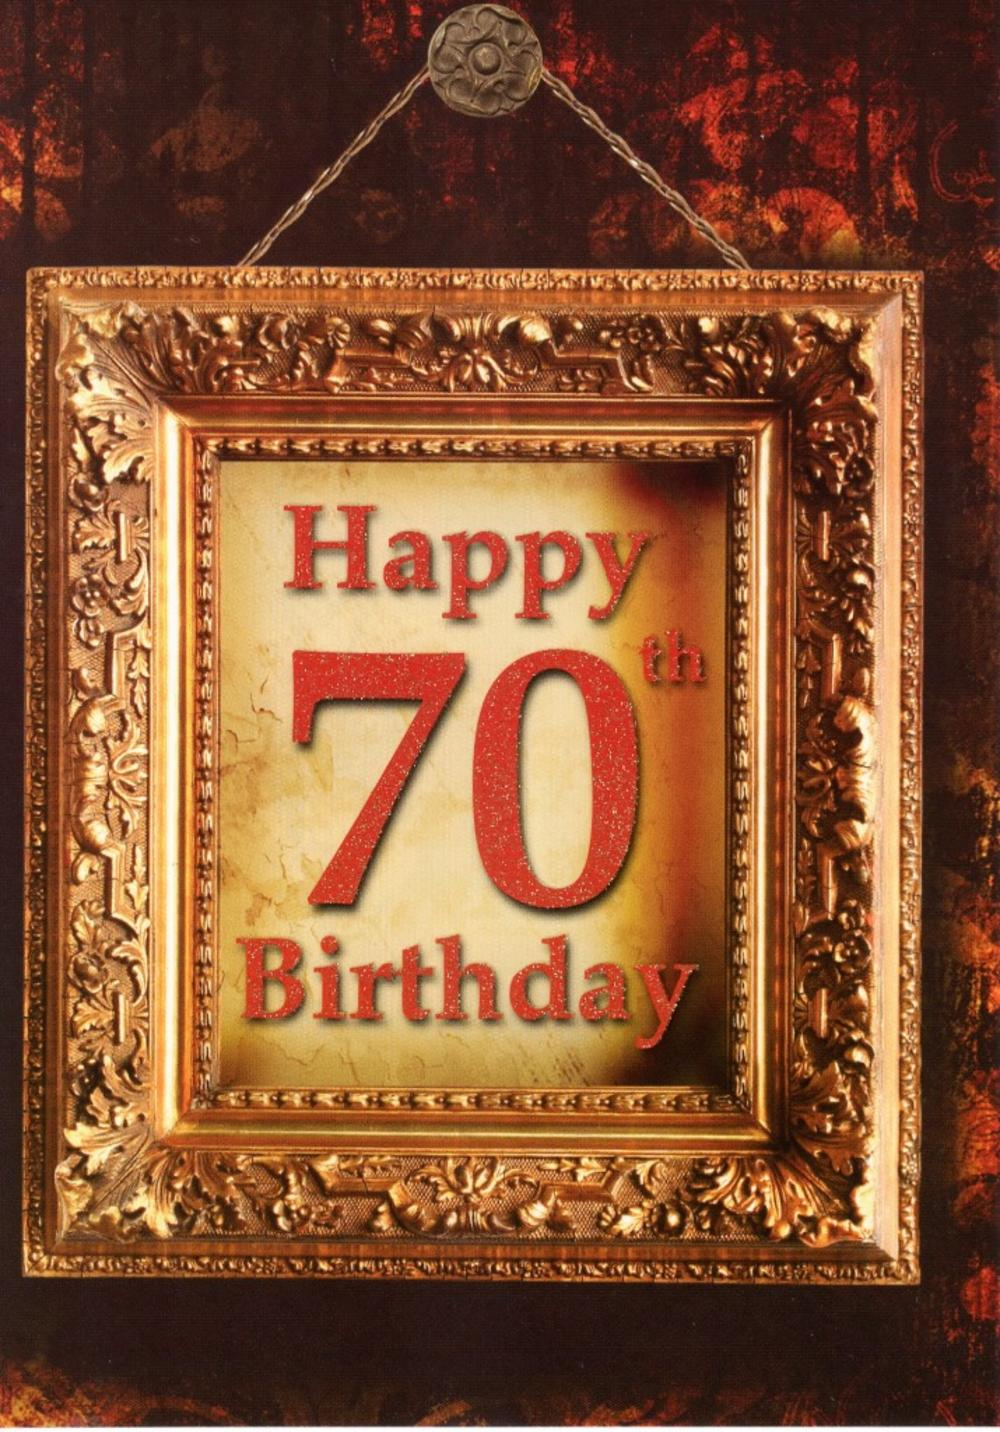 Happy 70th Birthday Greeting Card Blank Inside